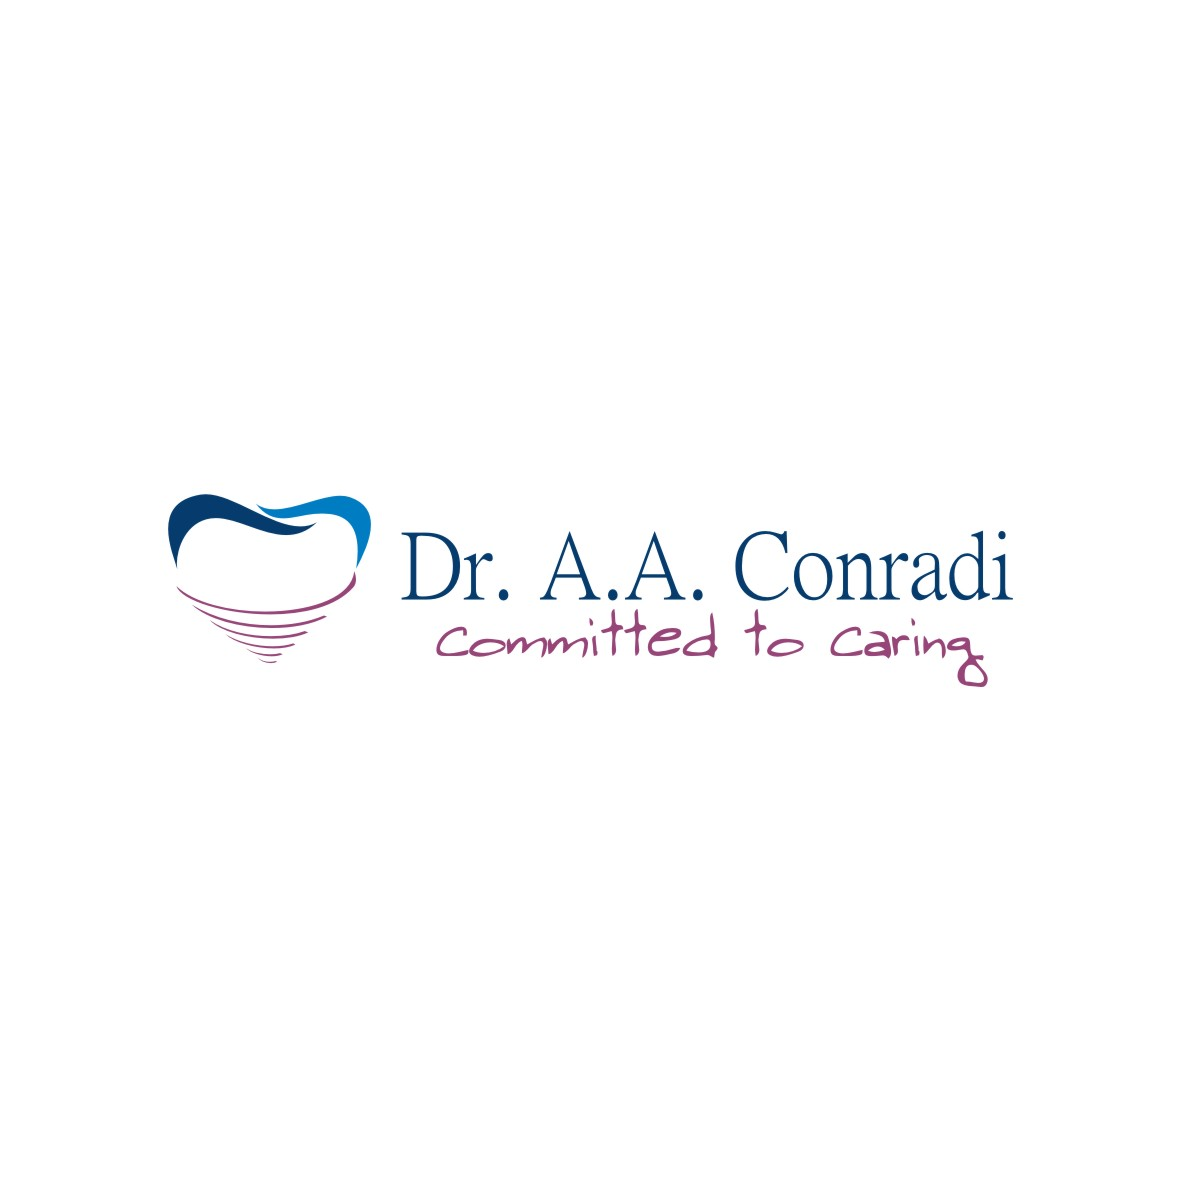 Logo Design by arteo_design - Entry No. 137 in the Logo Design Contest Unique Logo Design Wanted for Dr. A.A. Conradi.